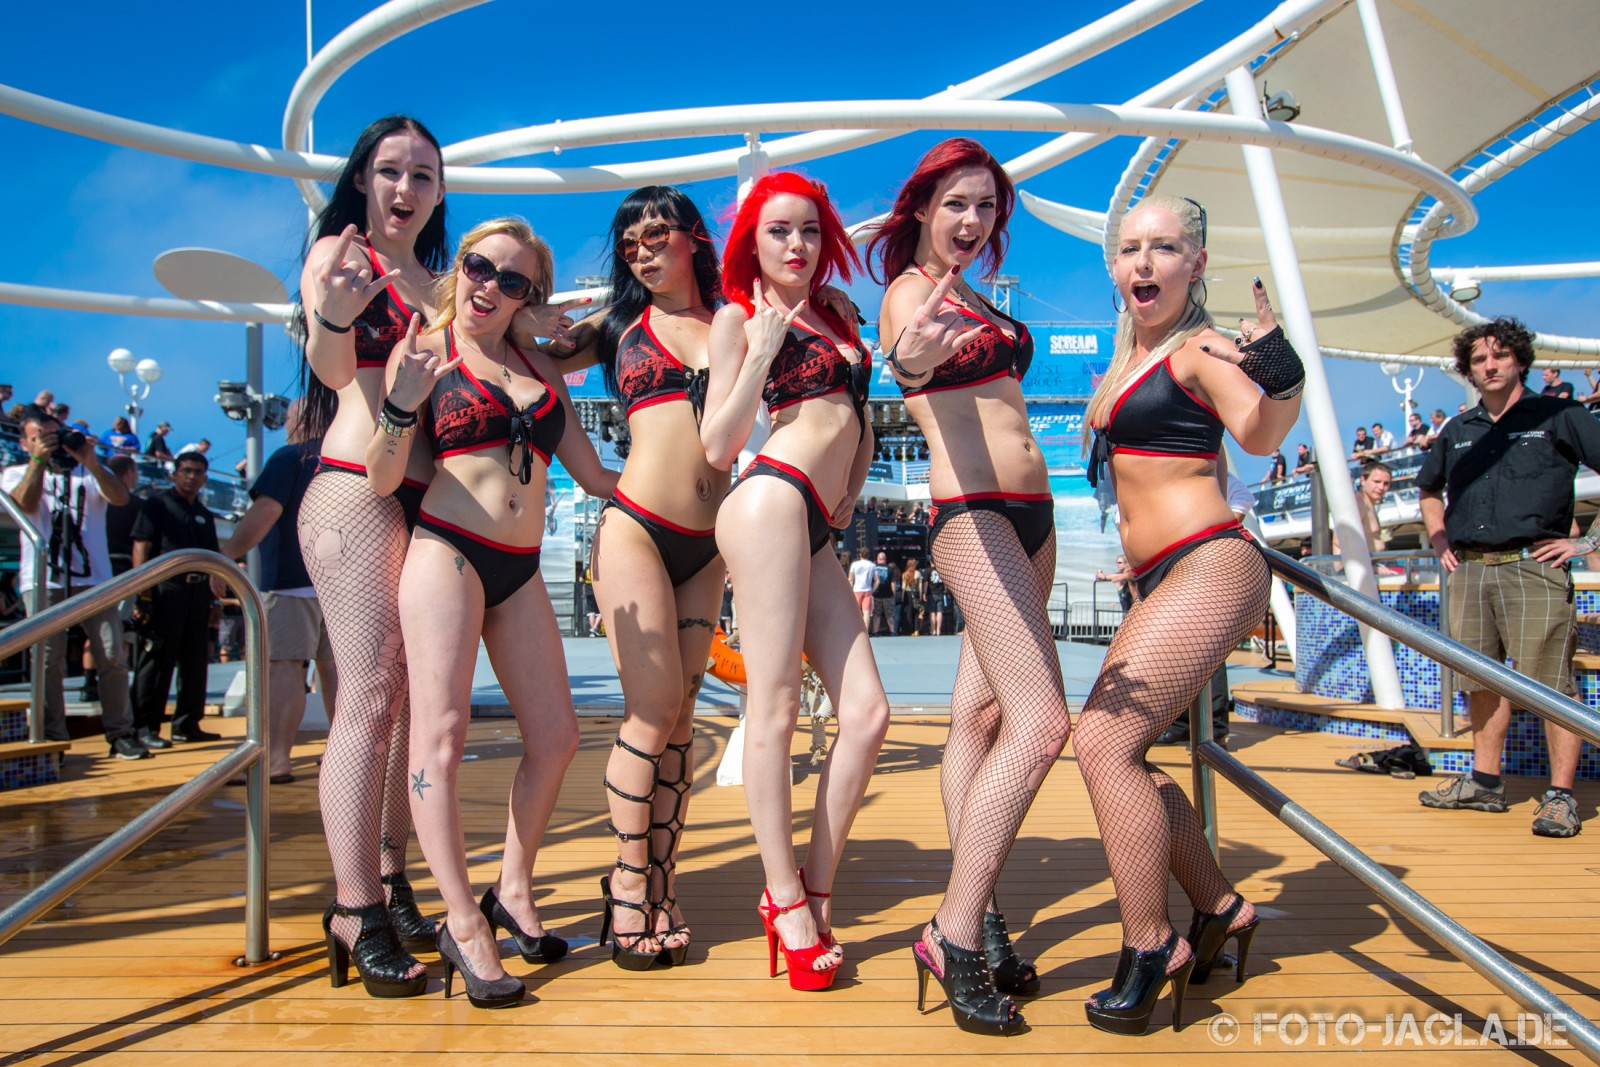 70000 Tons of Metal 2013 ::. Poolgirls on Pool Deck ::. http://www.foto-jagla.de